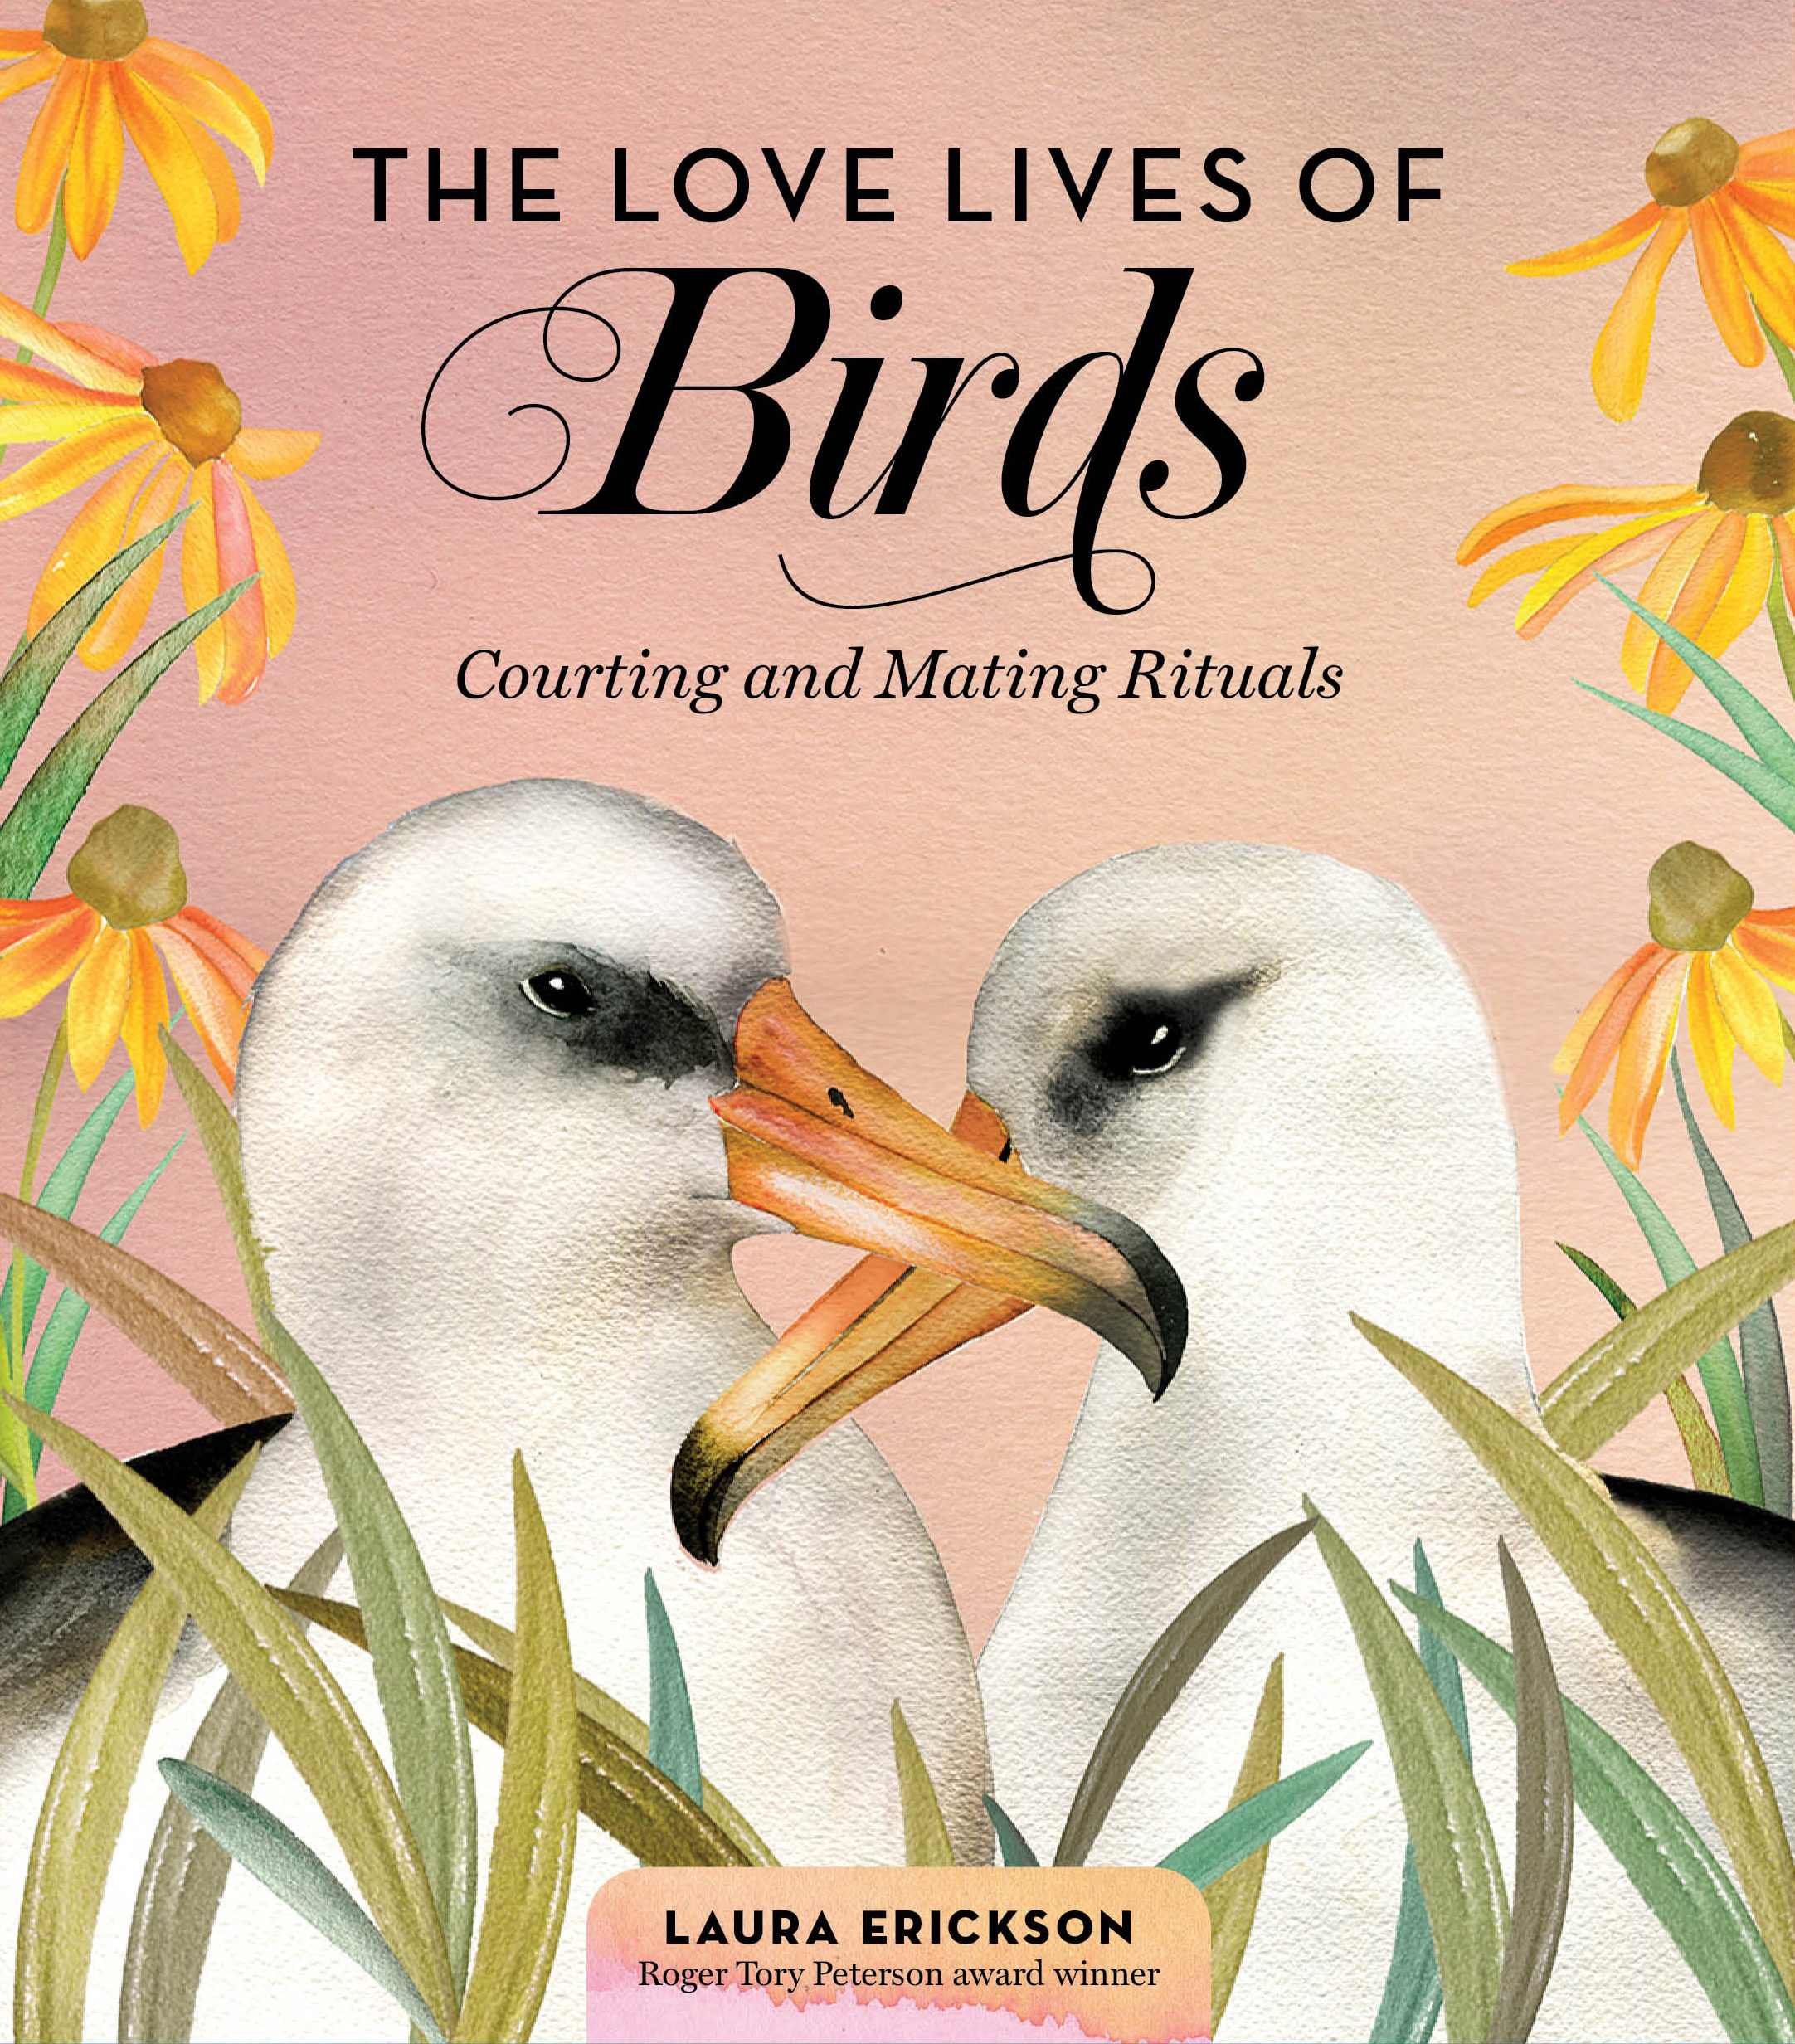 The Love Lives of Birds Courting and Mating Rituals - Laura Erickson